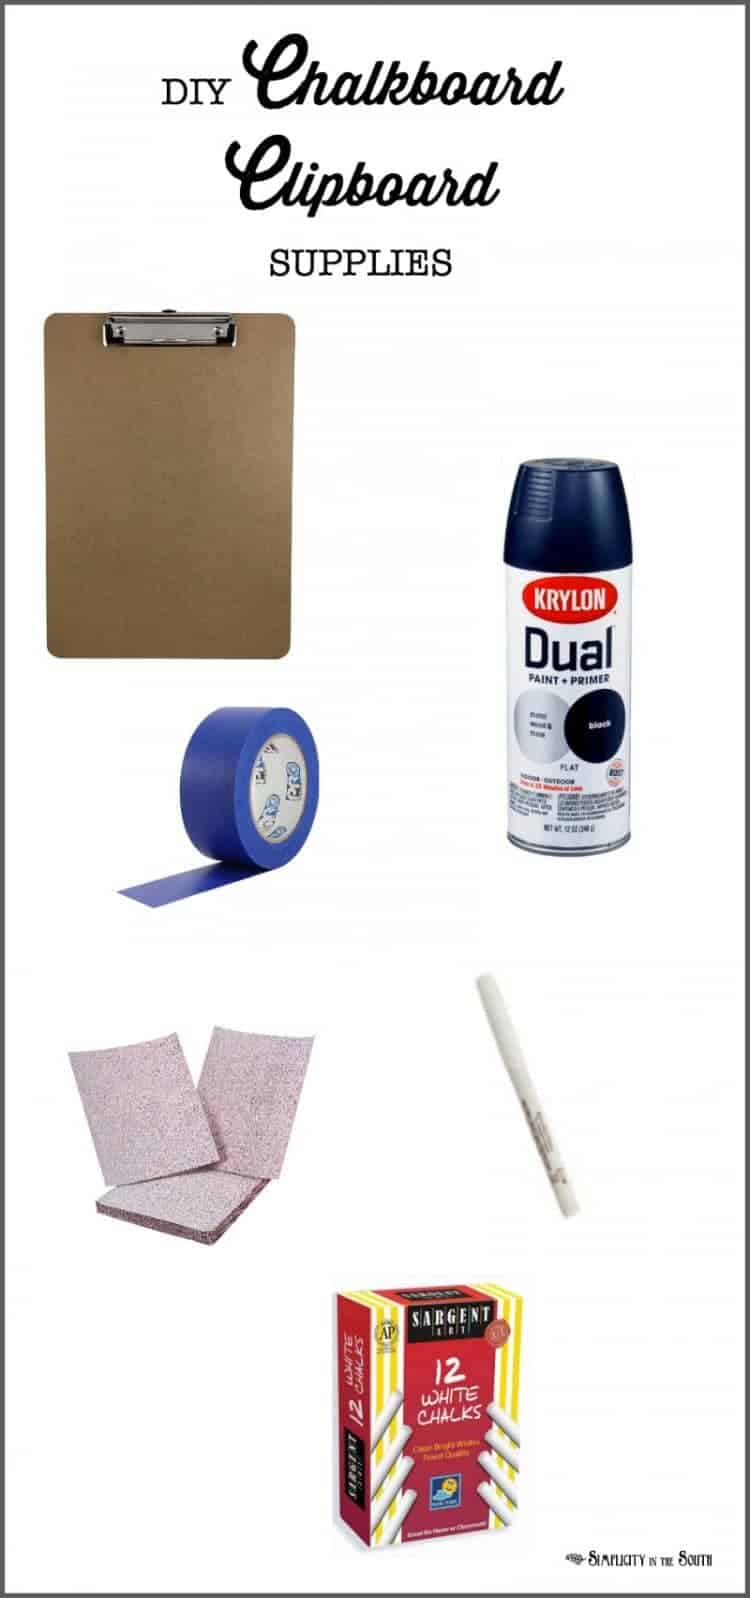 chalkboard clipboard supplies